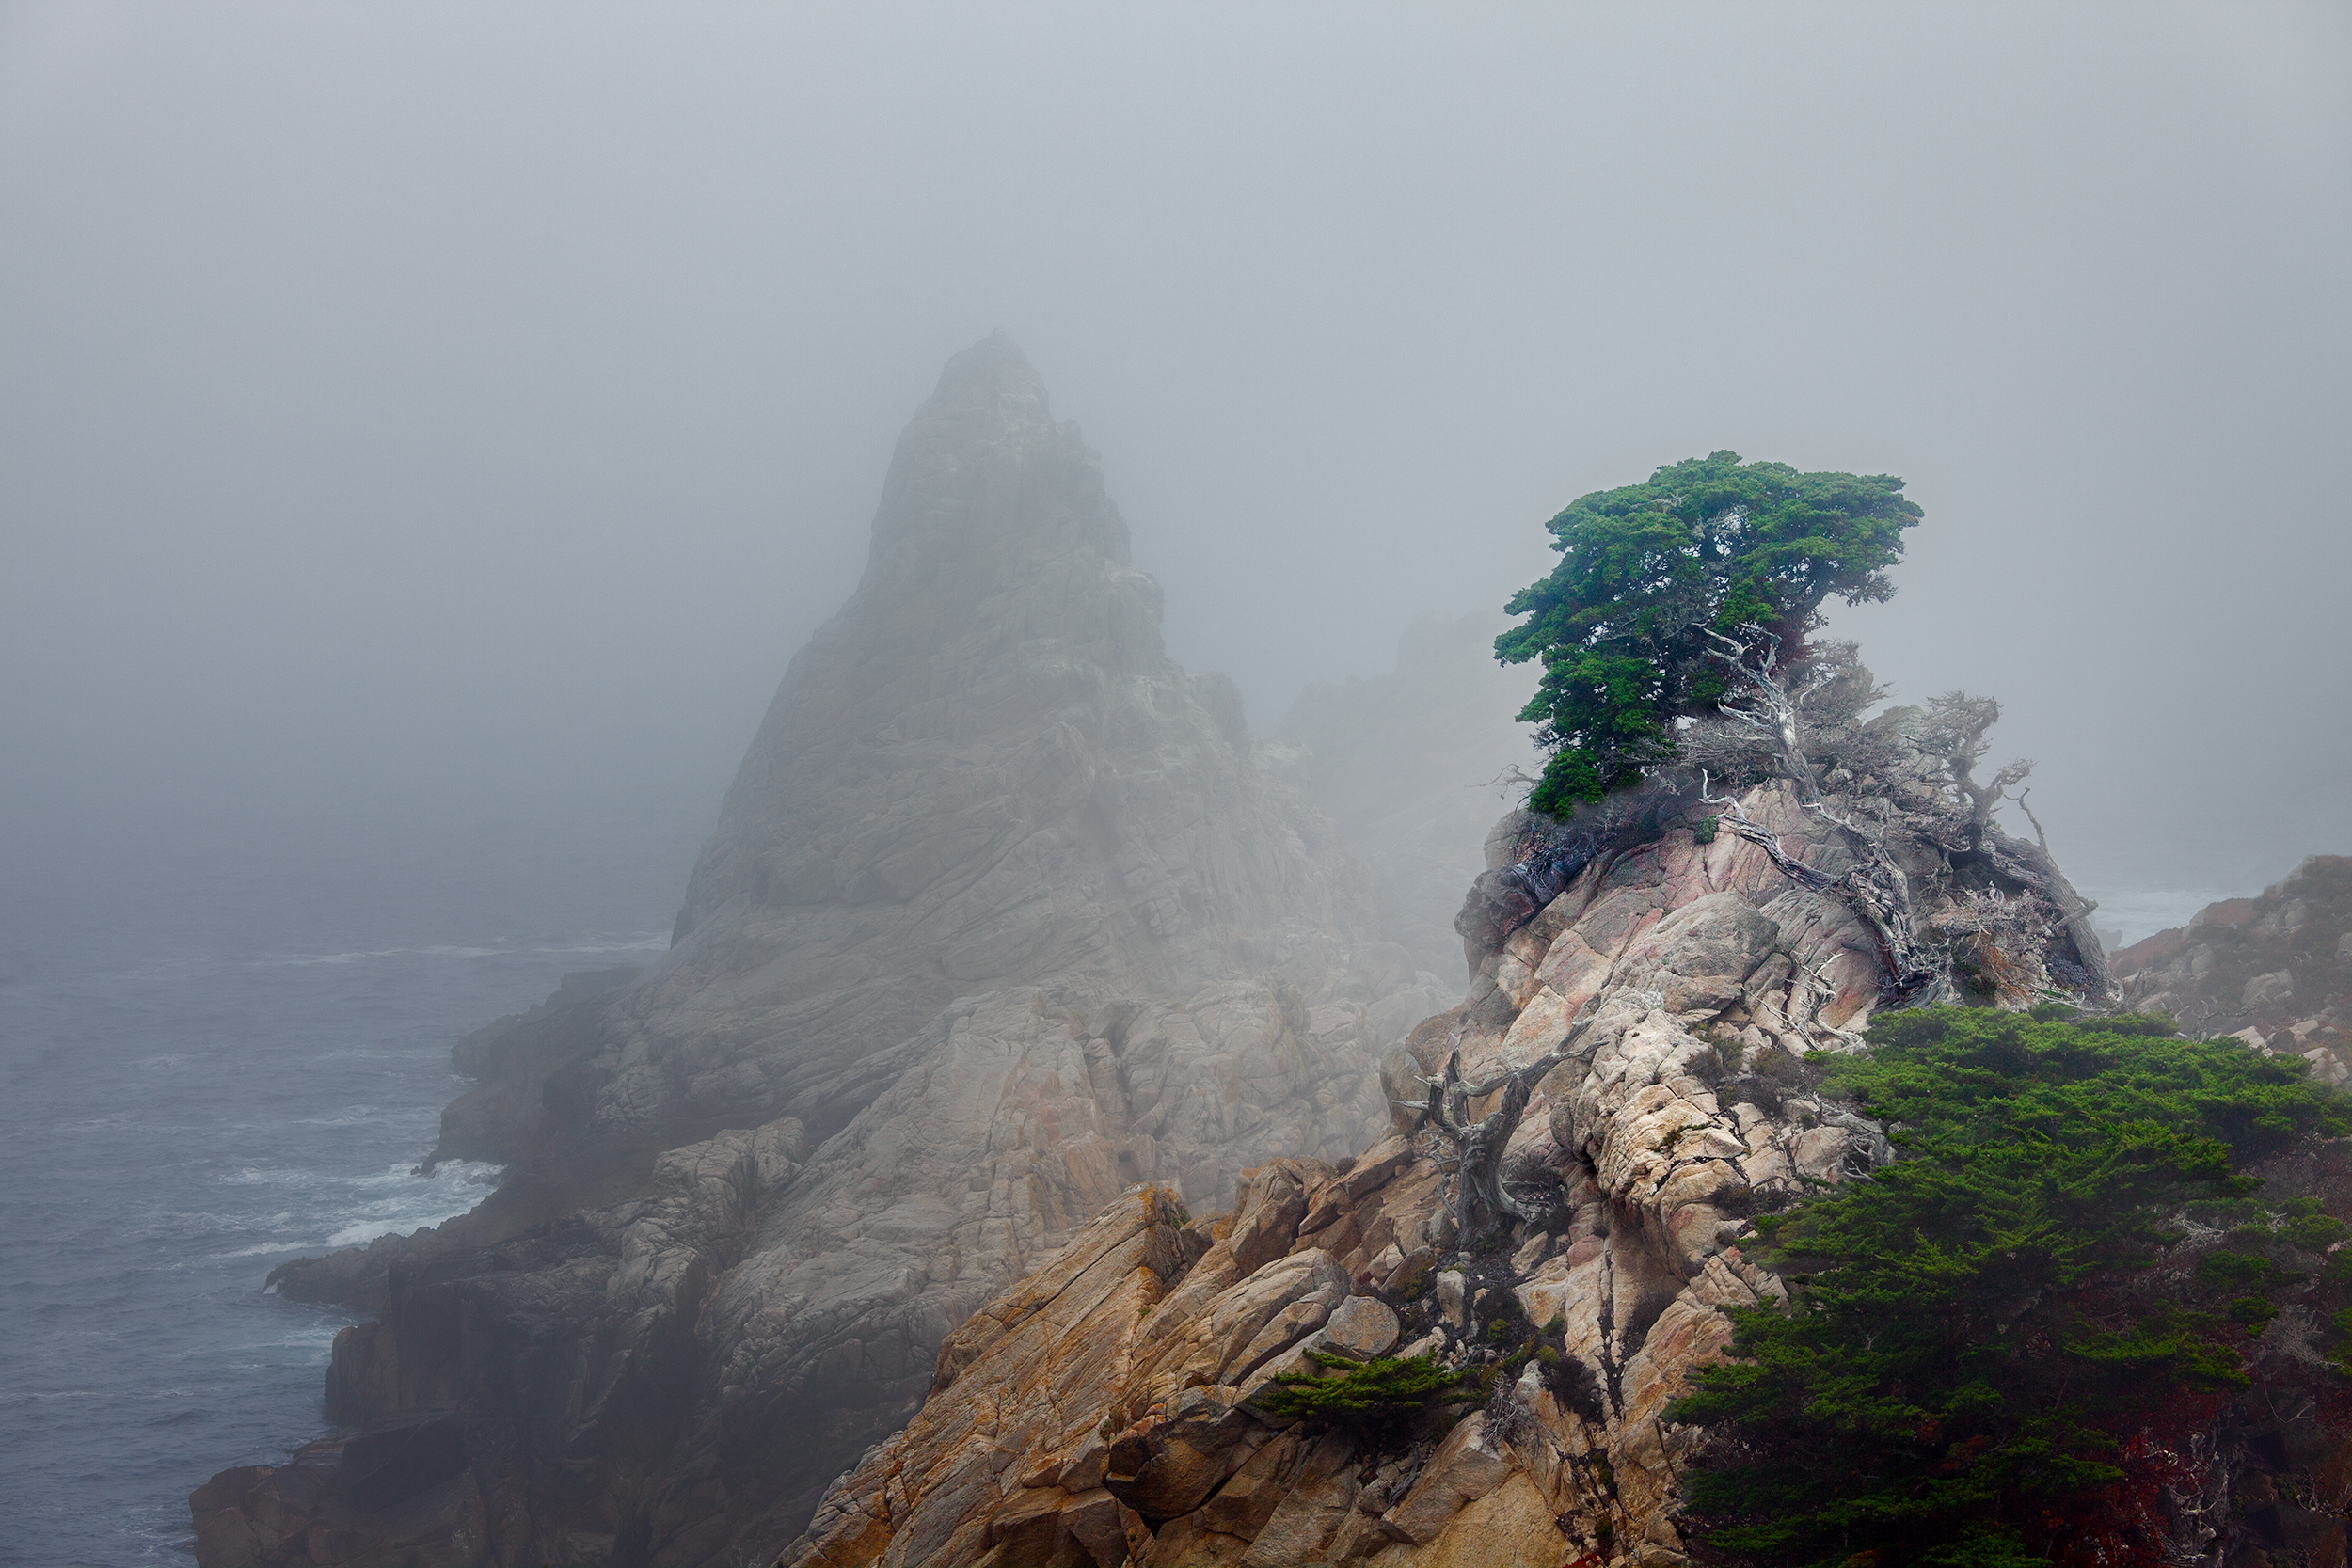 Cypress & Fog - Point Lobos (2942)